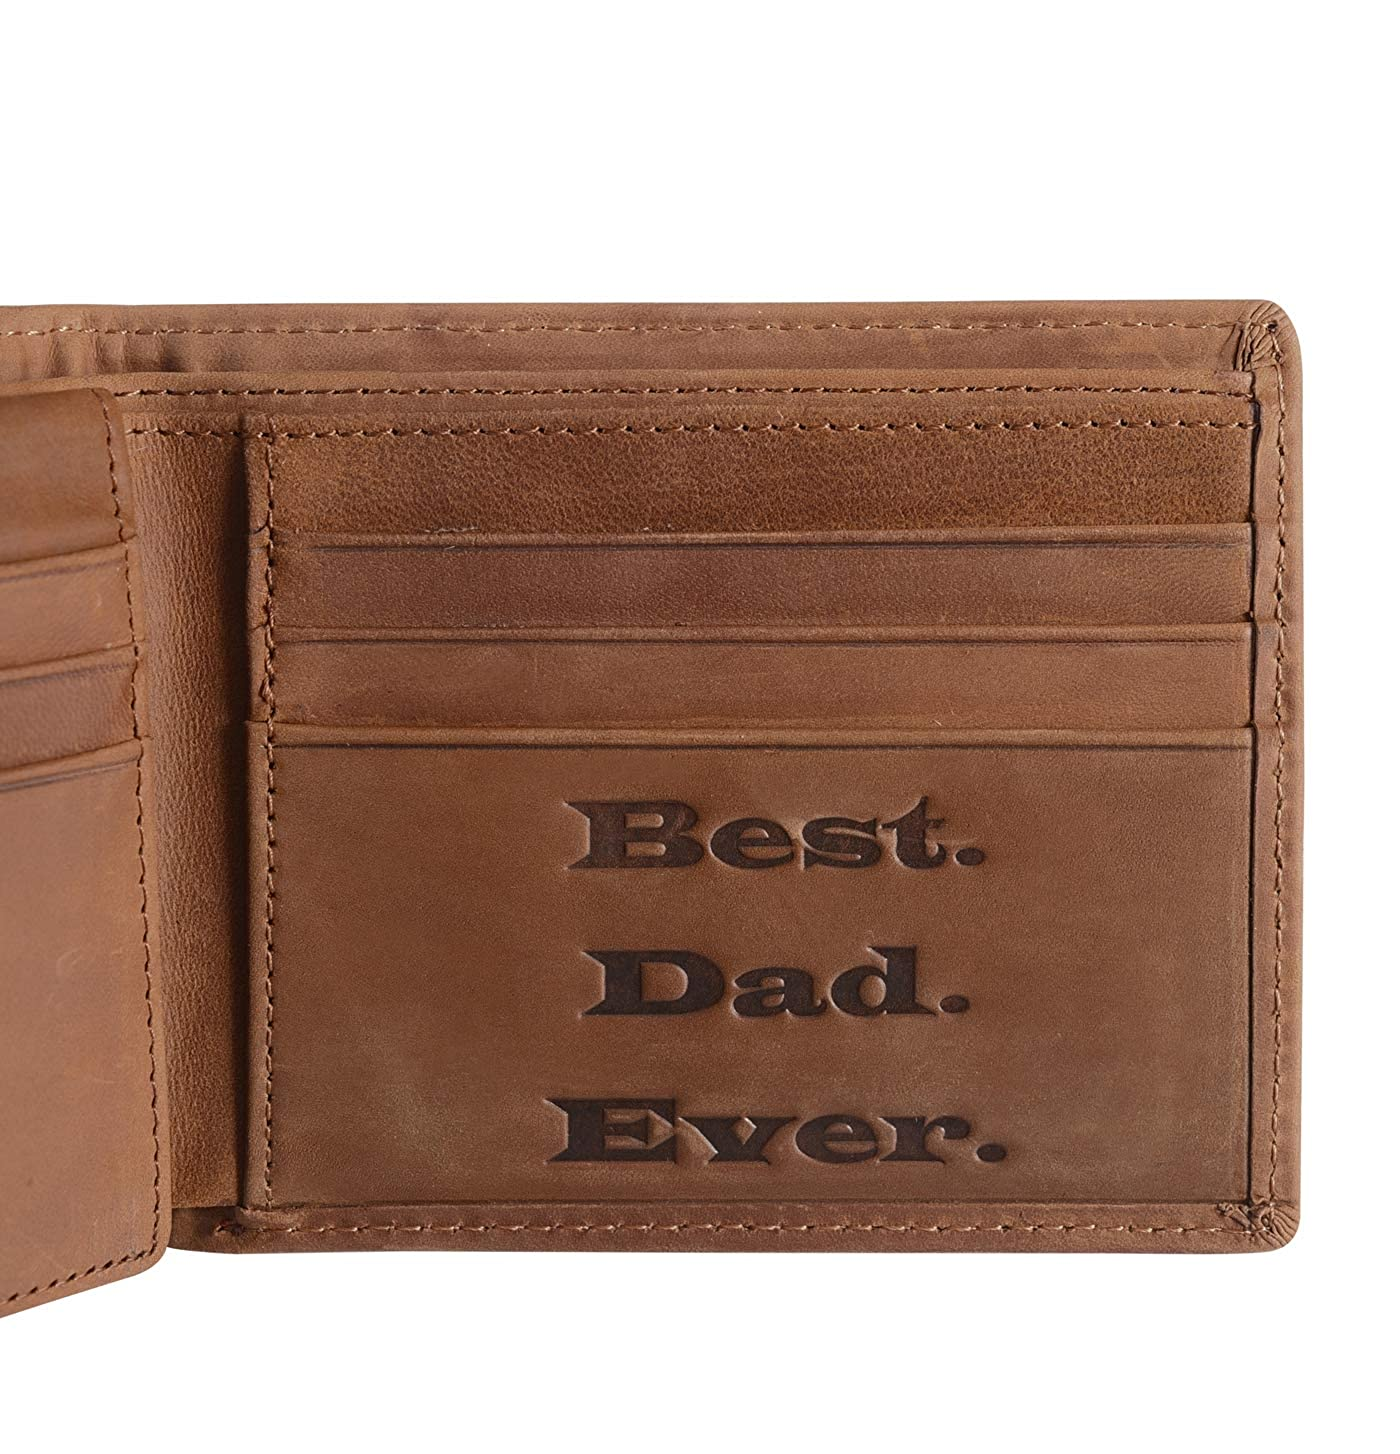 Genuine Leather Personalized Bifold Wallet for Men, RFID Blocking Wallet Gifts for Boyfriend Husband